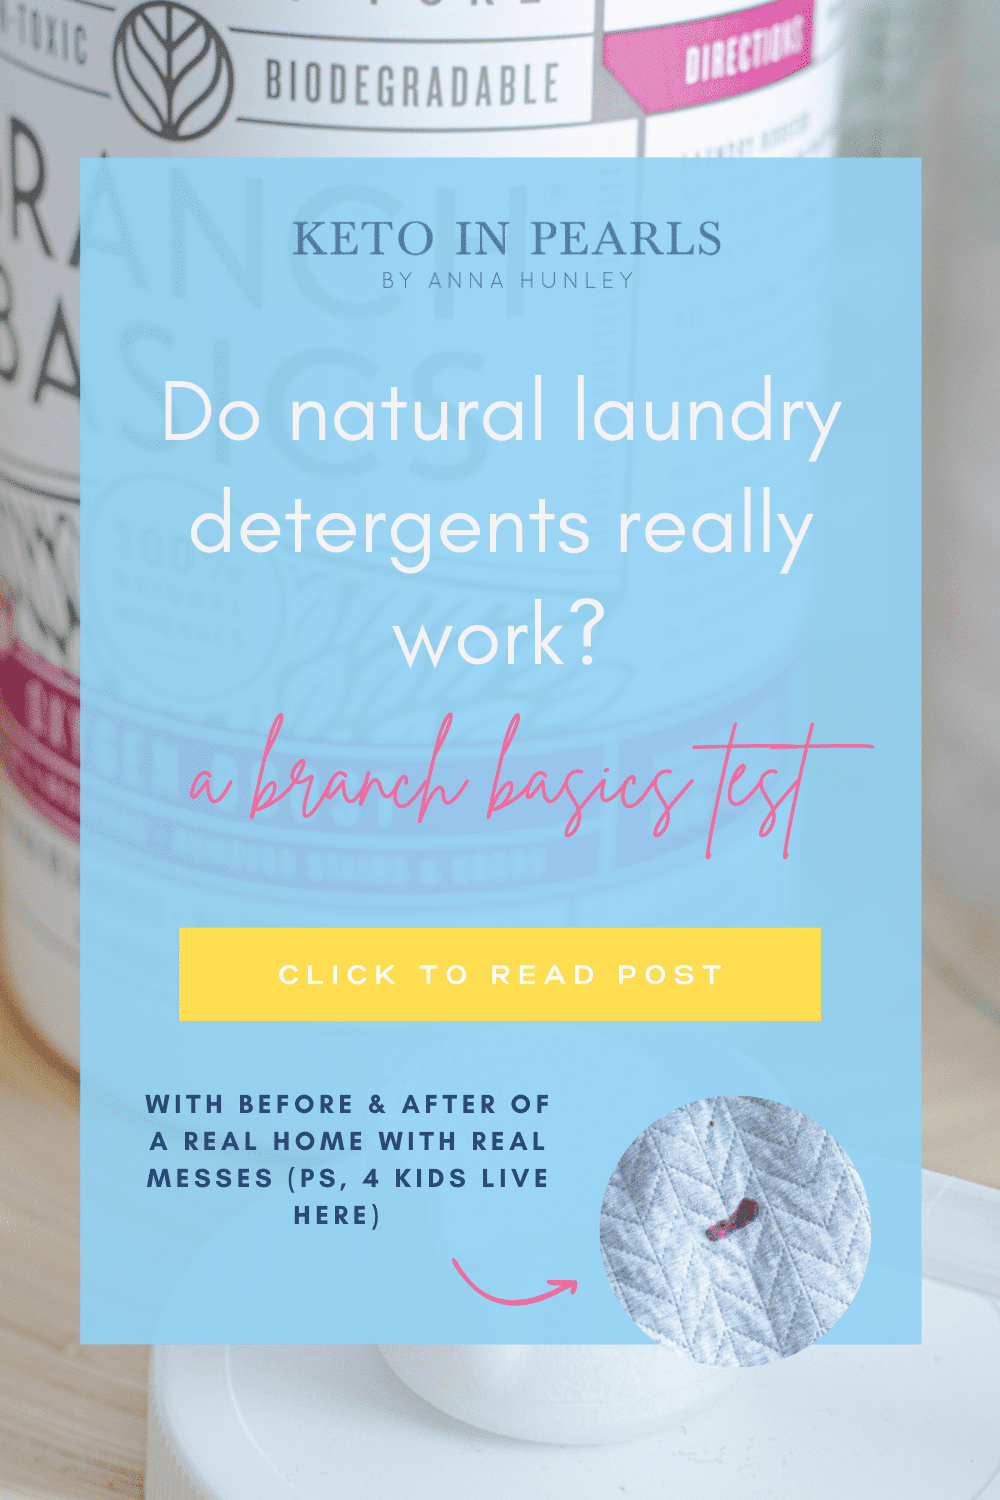 Do natural laundry detergents really work? I put branch basics natural laundry detergent to the test.